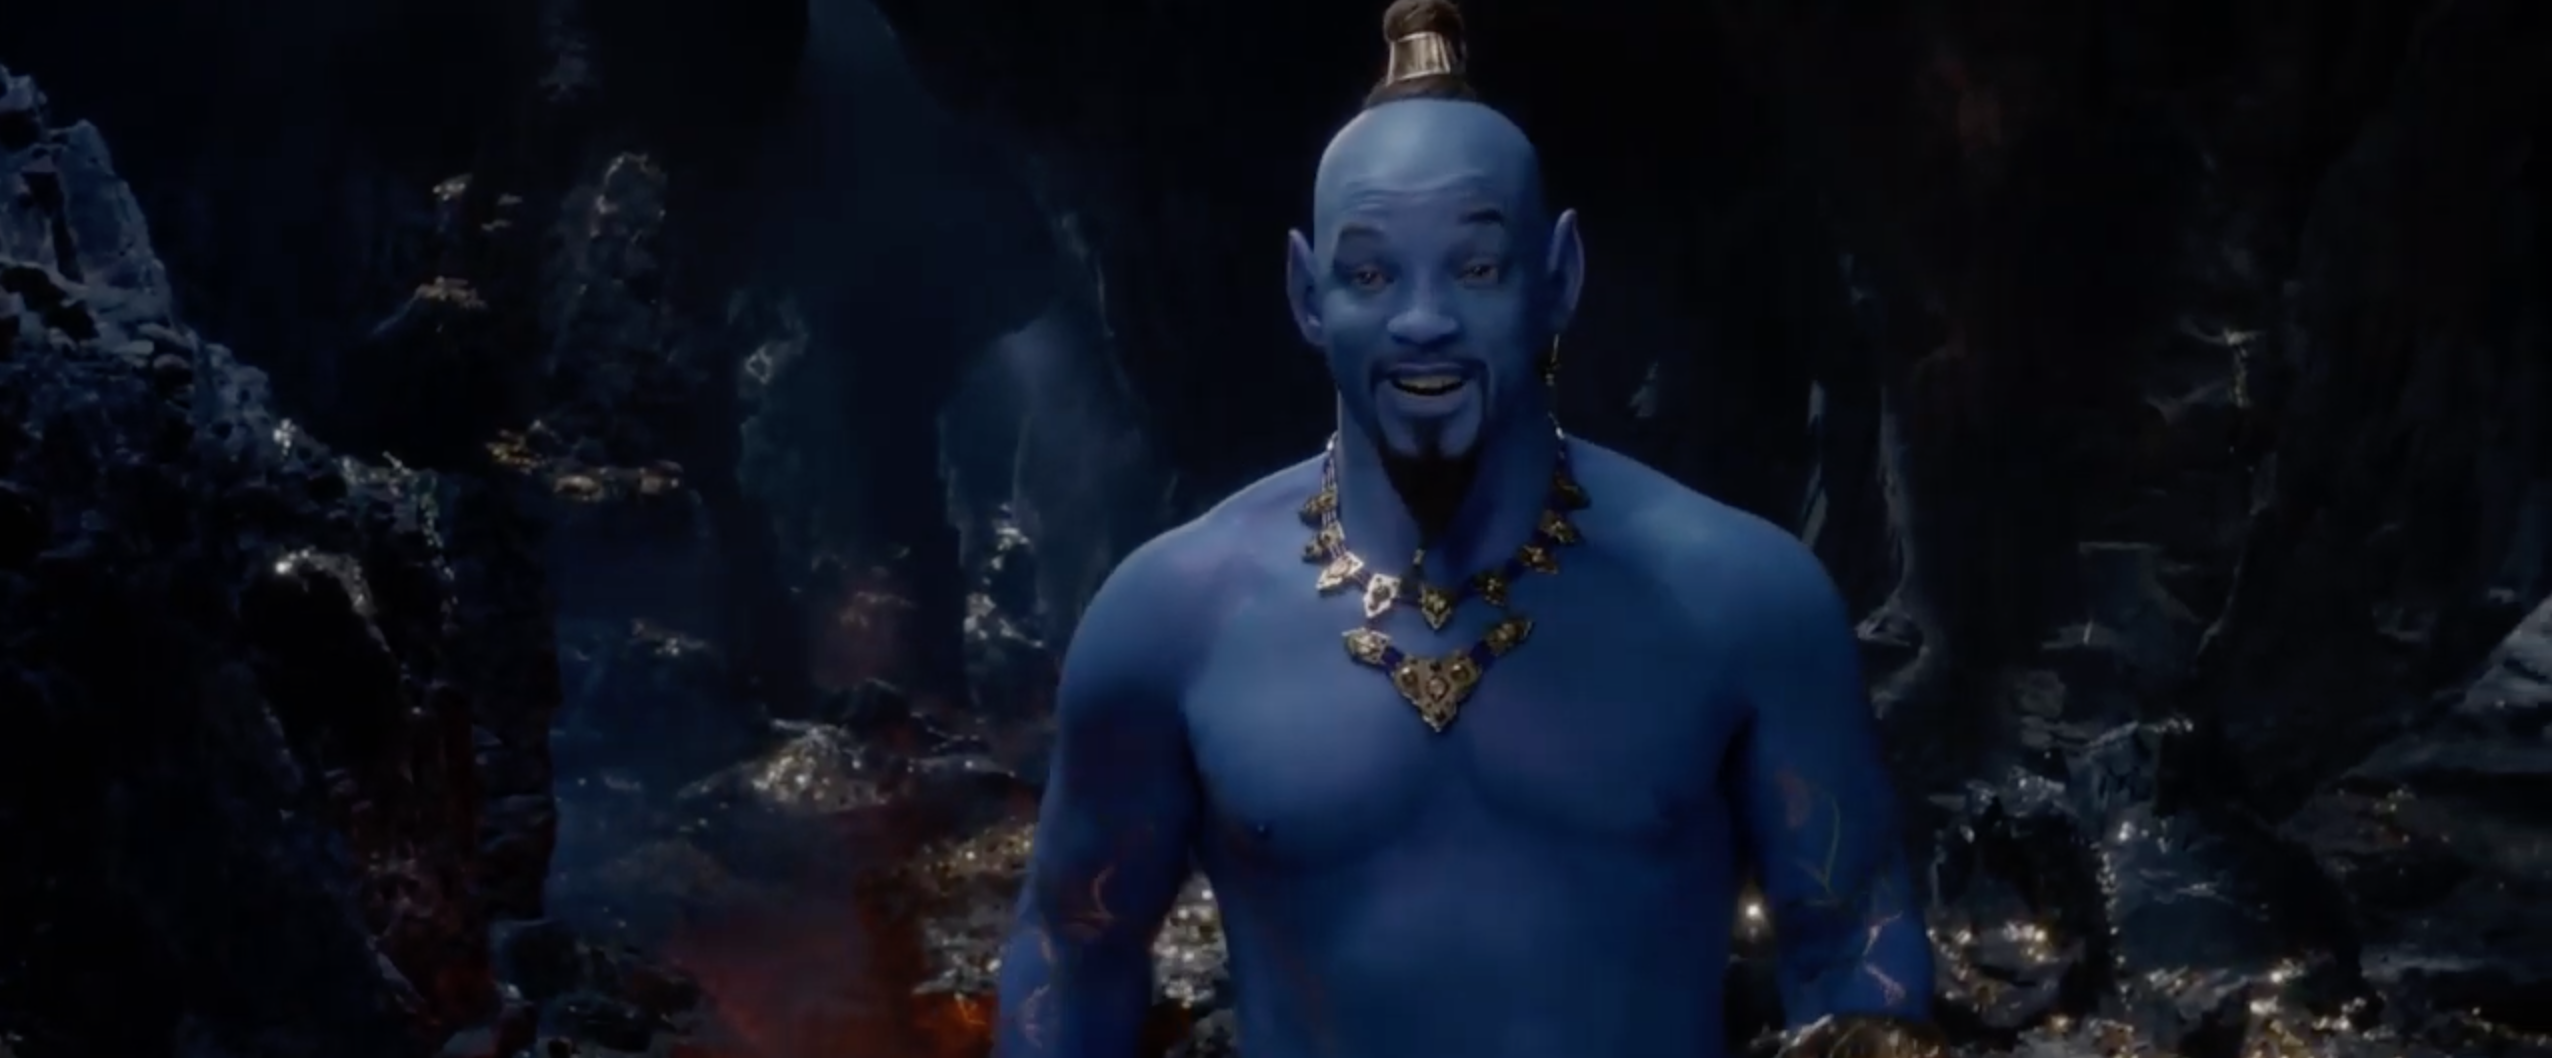 ALADDIN - Official Trailer #2 screen capture